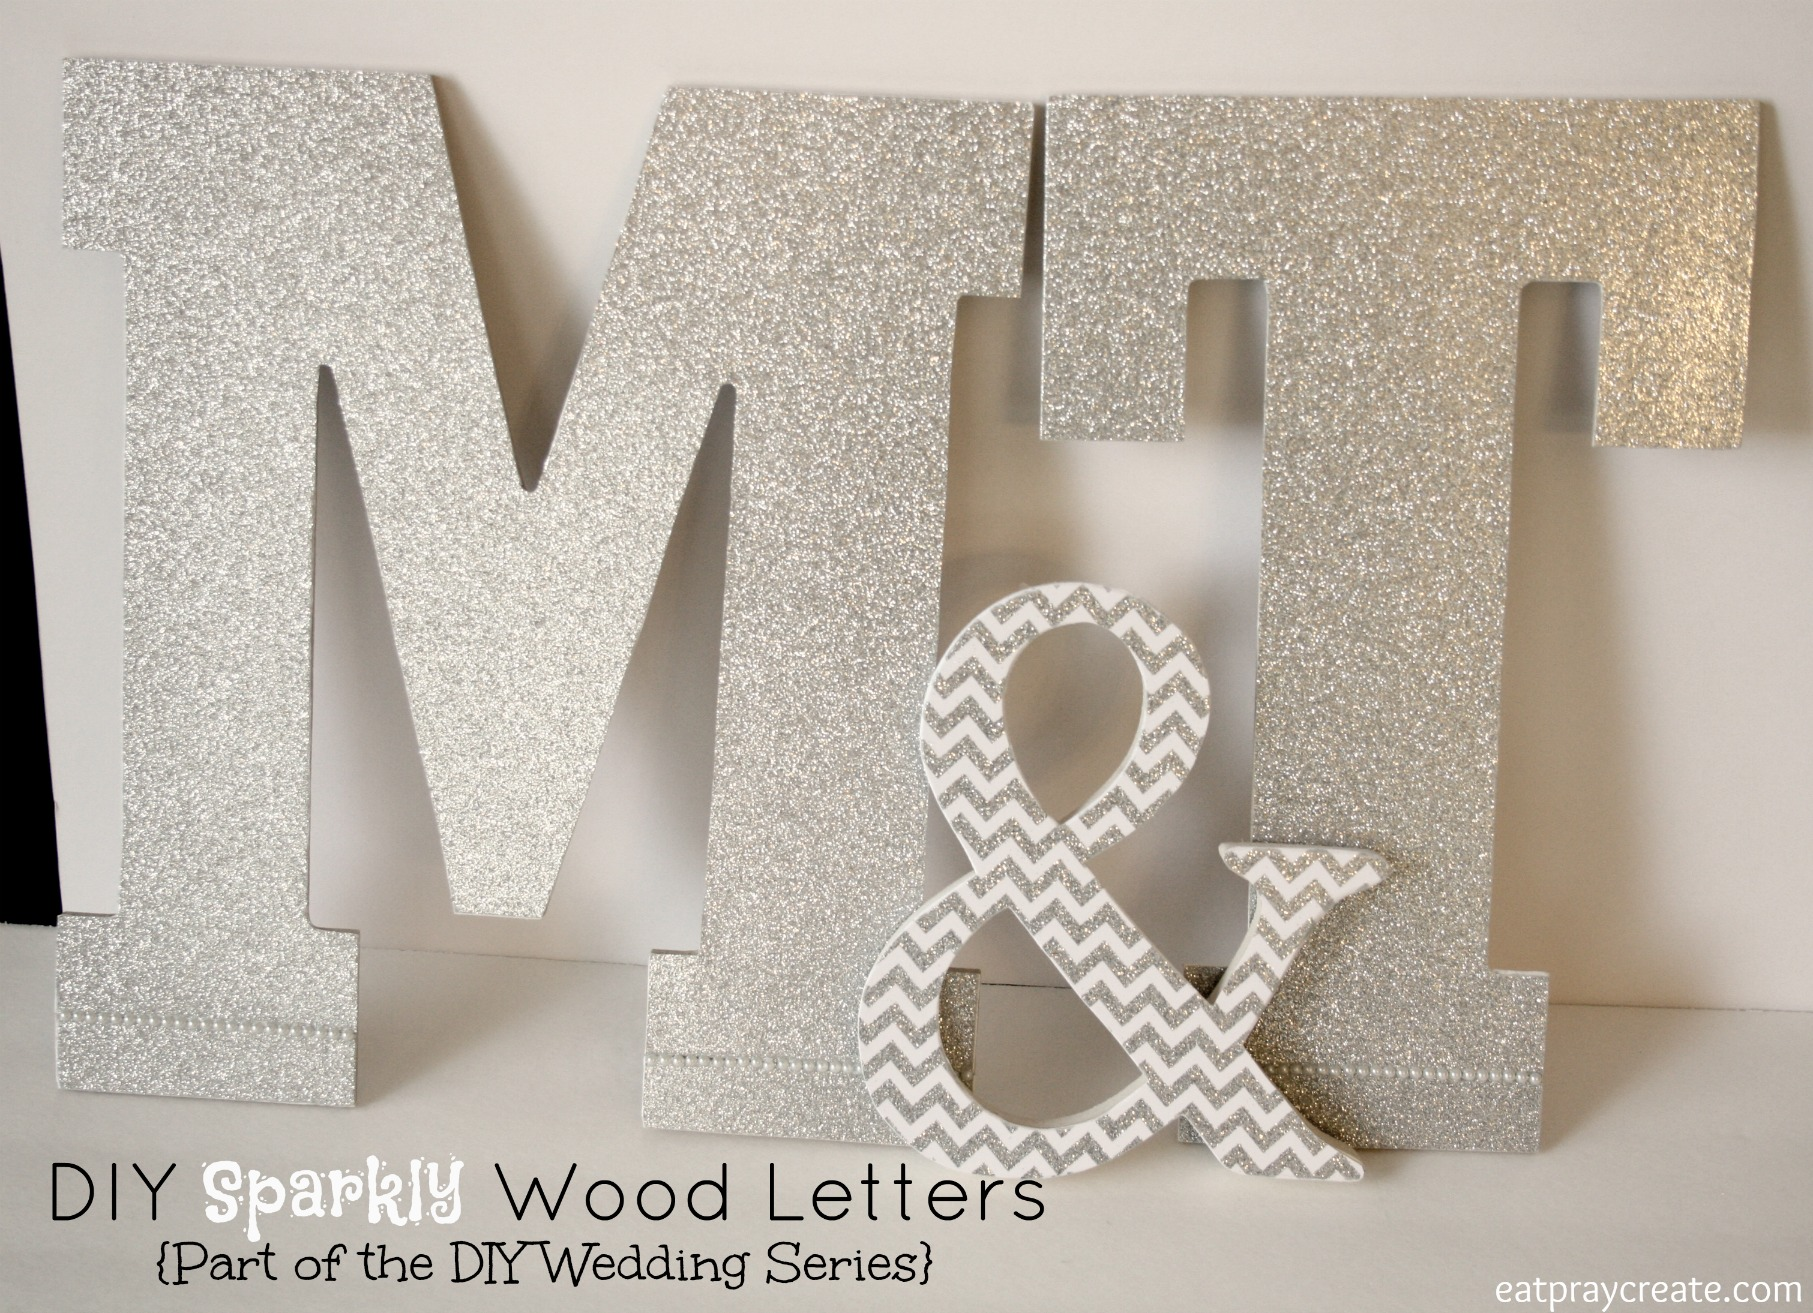 Desktop diy wedding letters of pc high quality wood letters series eat pray create